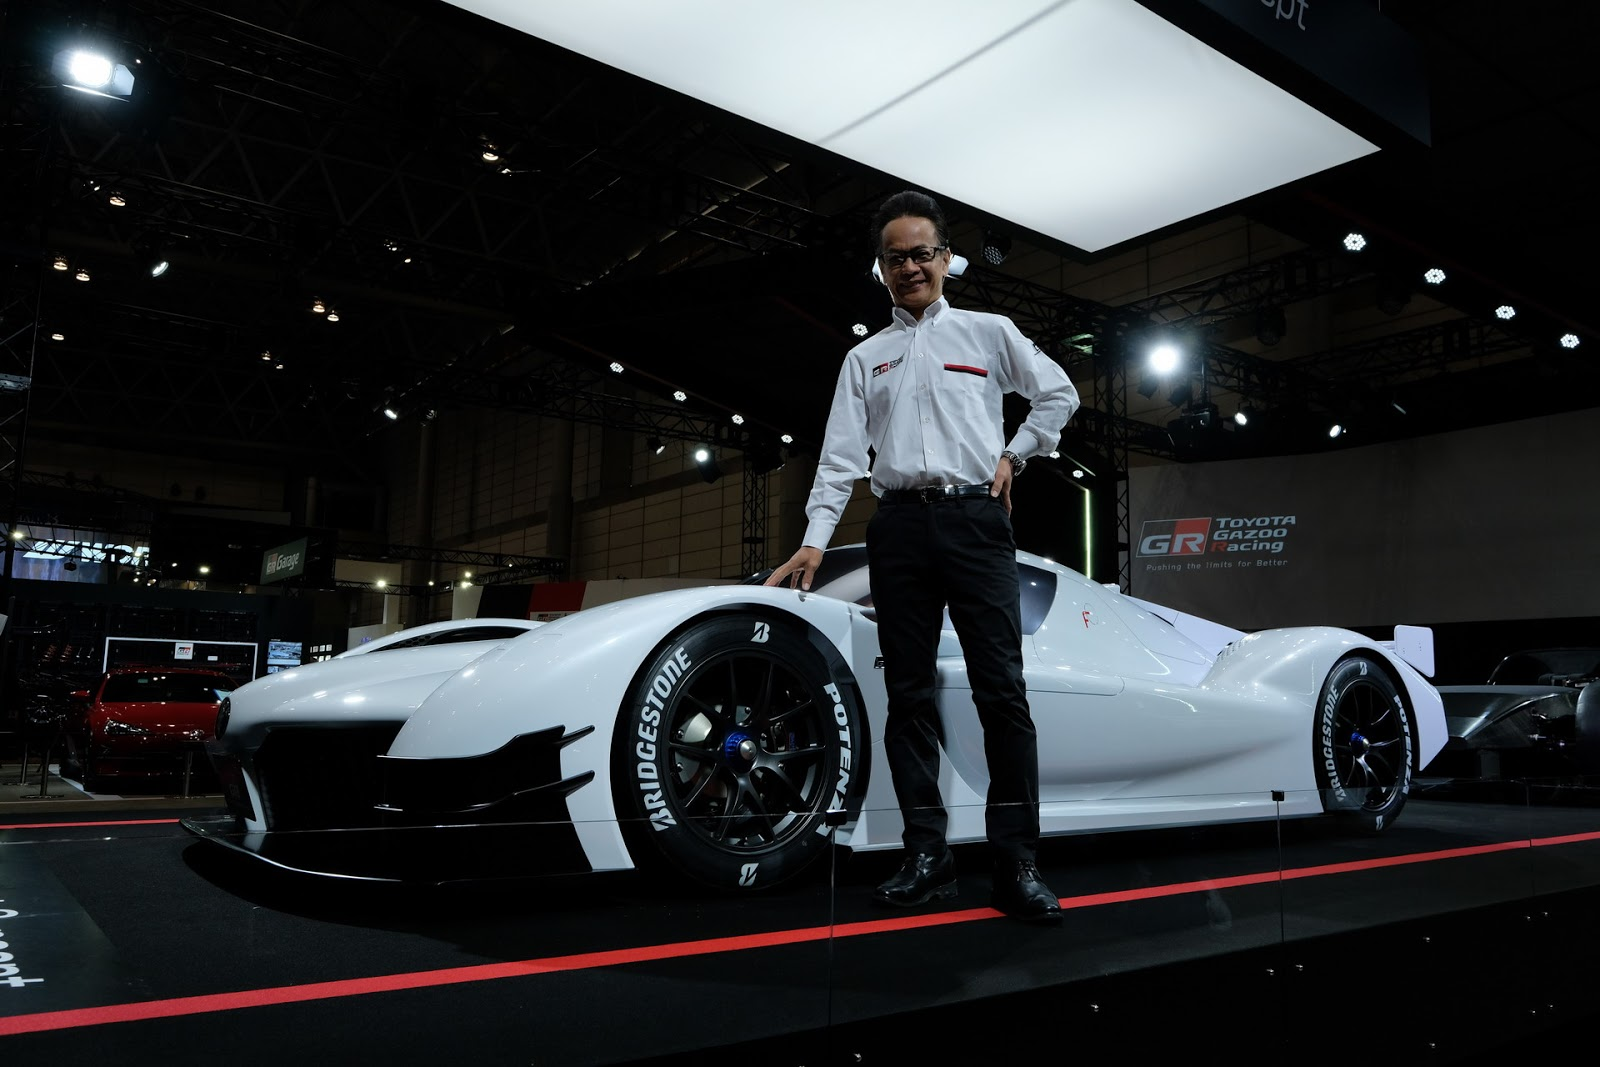 1000-hp Toyota GR Super Sport Concept previews race-honed hybrid hypercar